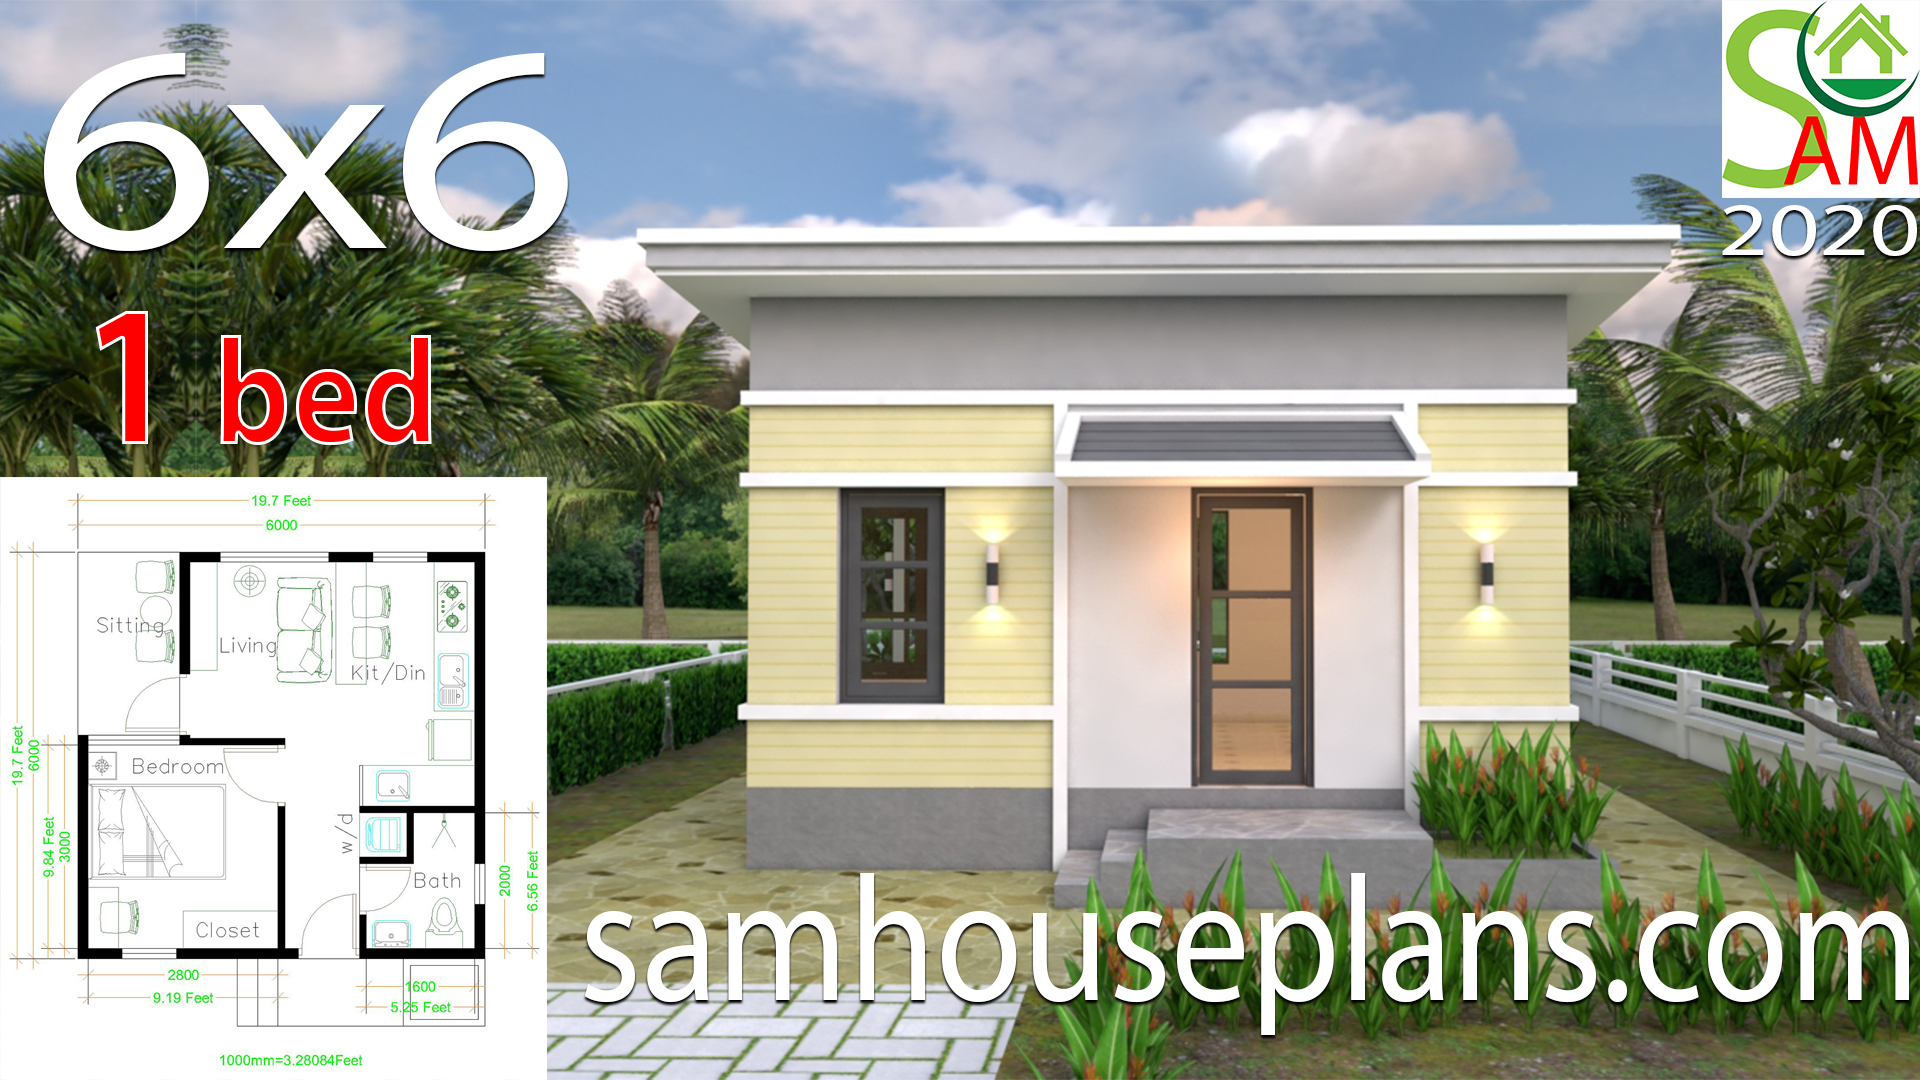 One Bedroom House Plans 6x6 With Shed Roof Samhouseplans